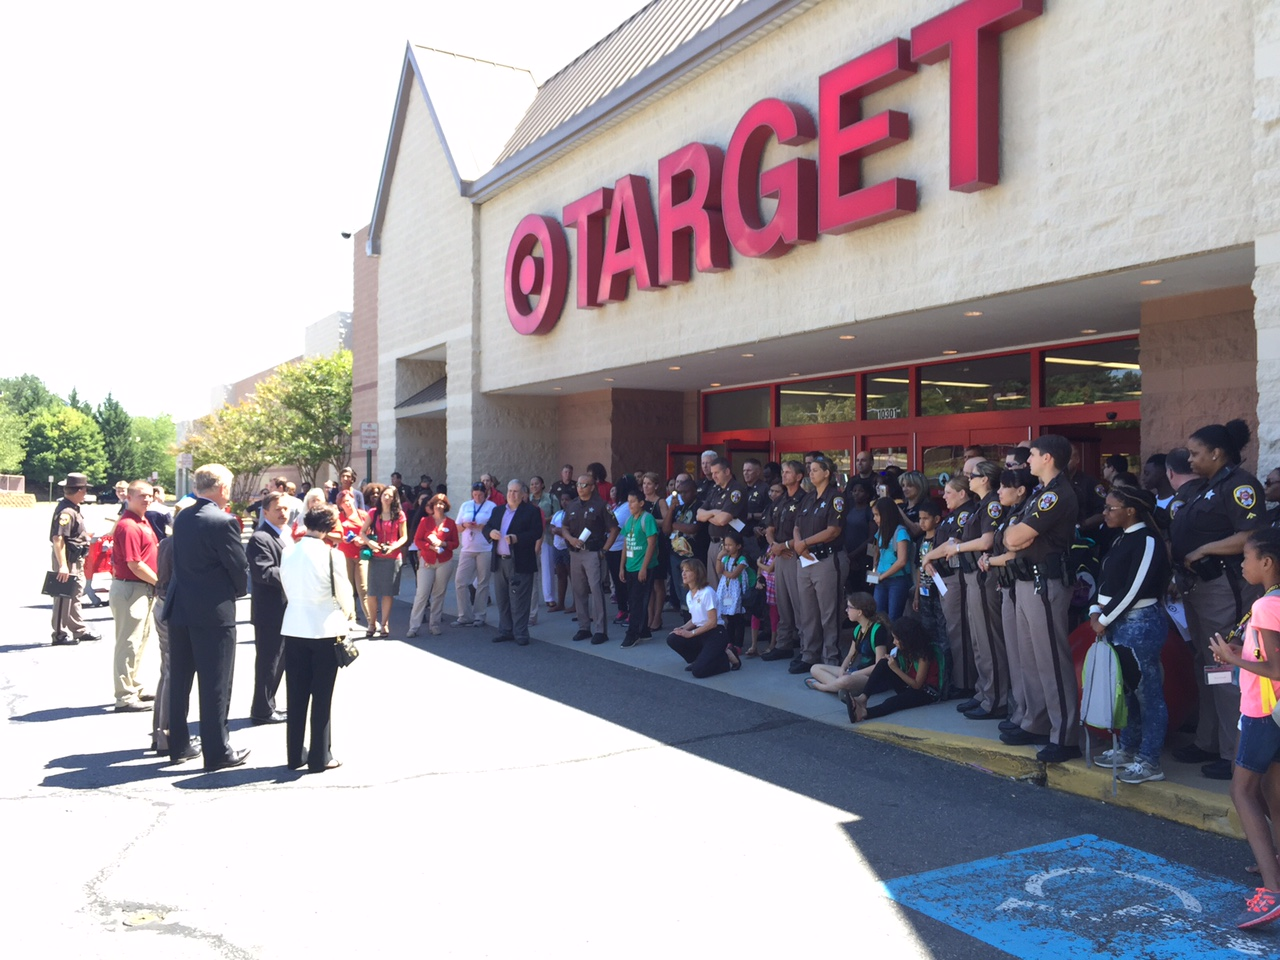 At the Burke, Virginia, Target, 40 children being treated to a shopping spree are from Katherine K. Hanley Family Shelter in Fairfax, Patrick Henry Family Shelter in Falls Church and Next Steps Family Shelter in Alexandria. (WTOP/Kristi King)